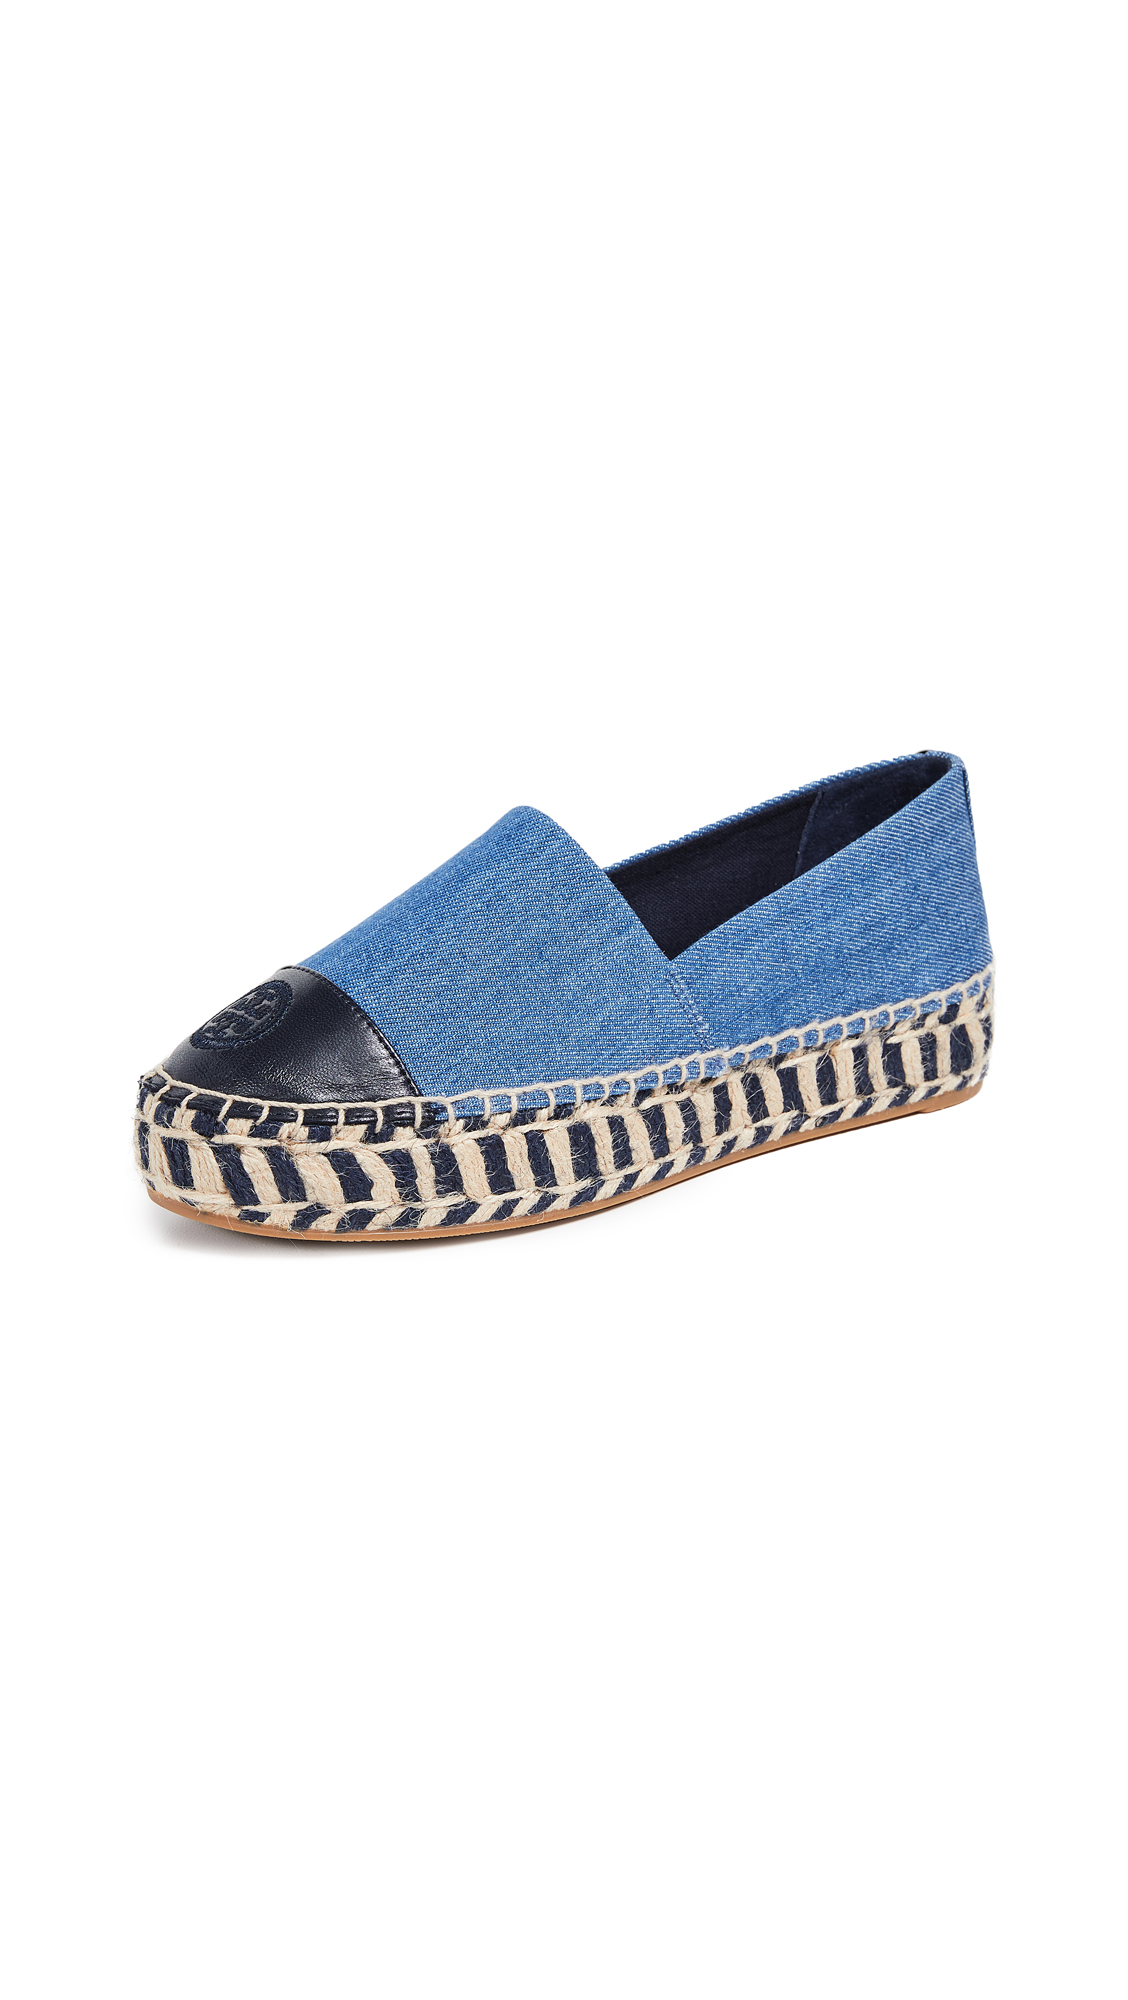 Tory Burch Colorblock Platform Espadrilles - Denim Chambray/Perfect Navy